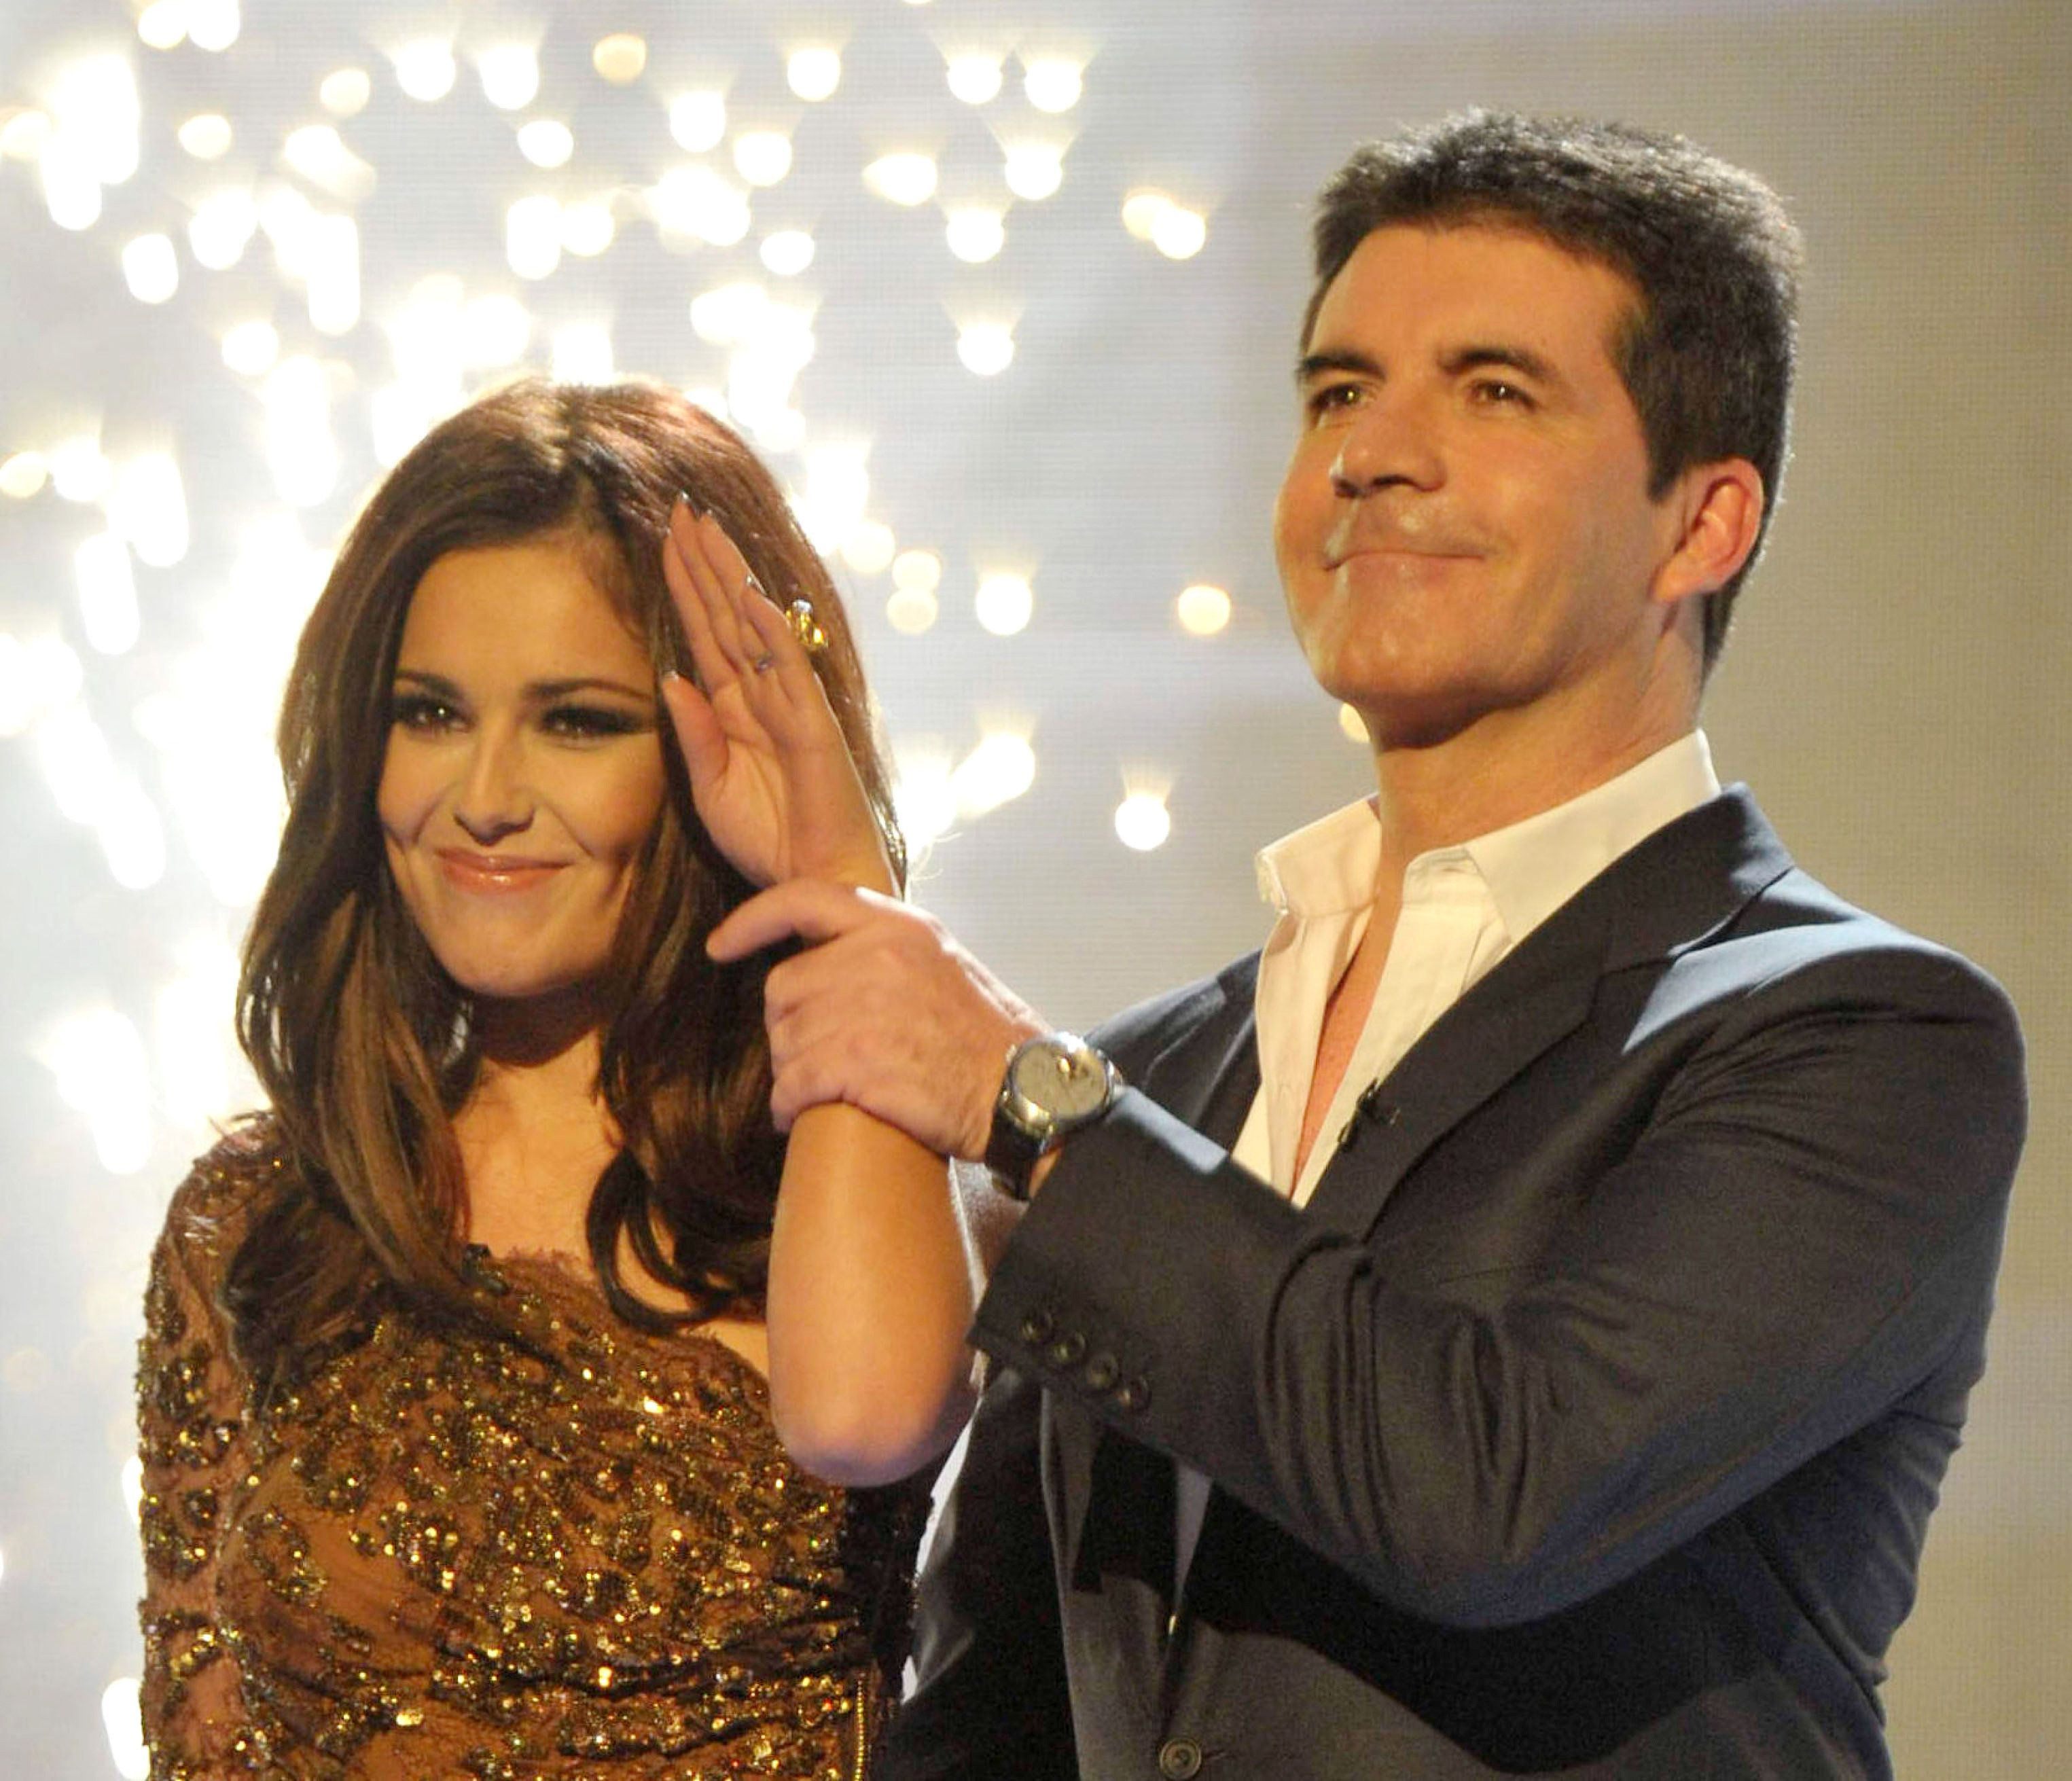 Simon Cowell Teases Cheryl's TV Return - But It Won't Be On 'The X